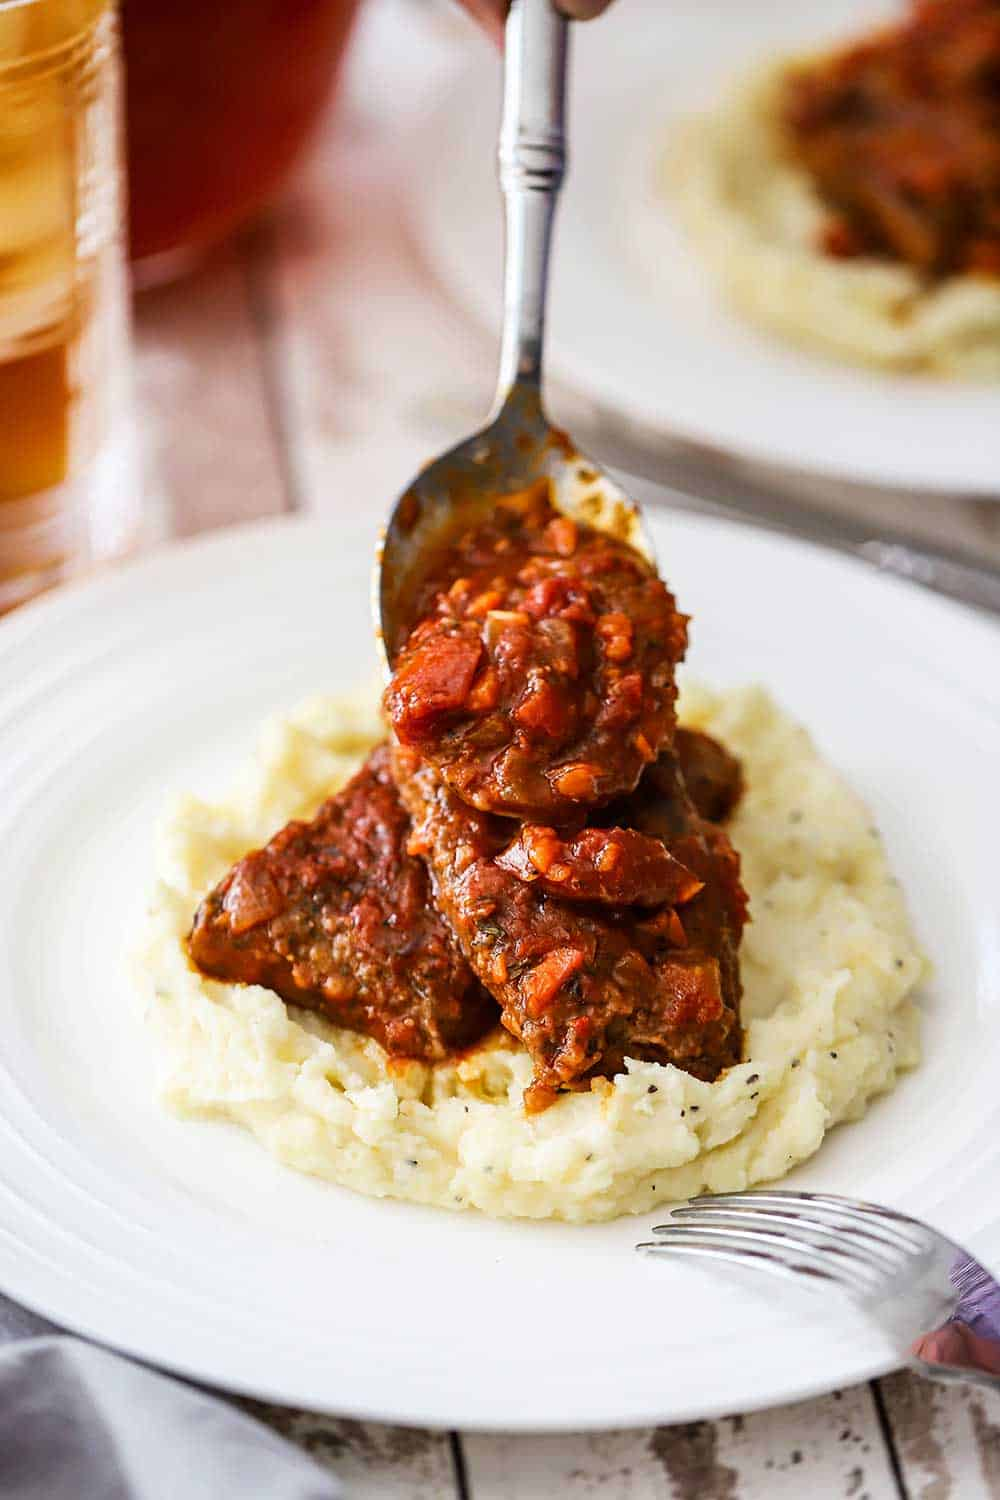 A person using a large silver spoon to pour Swiss steak sauce over two piece of meat sitting on a bed of mashed potatoes on a white dinner plate.